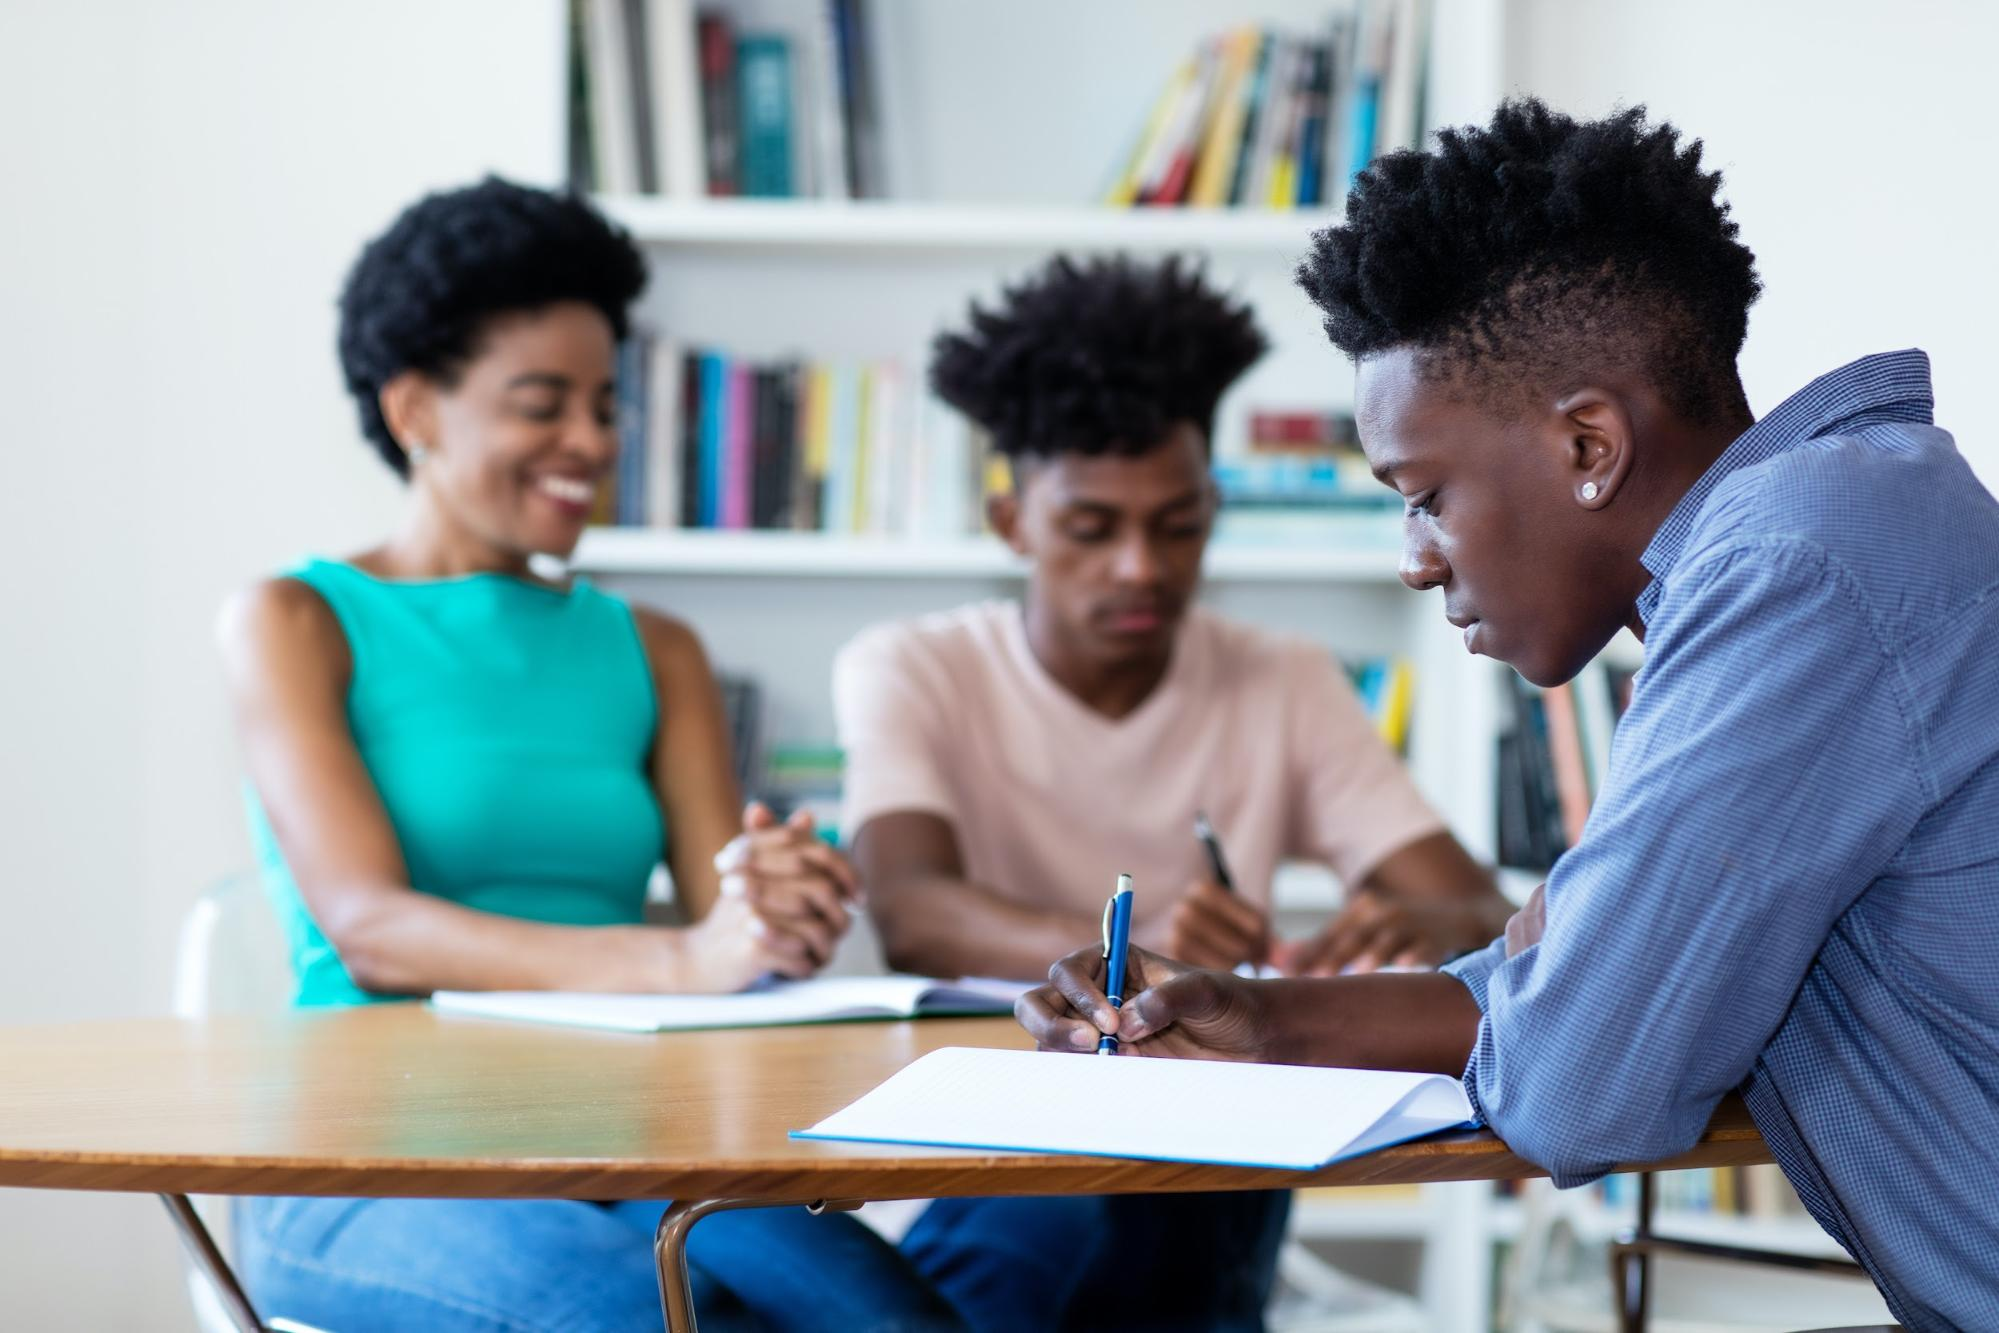 Teenage boy writing in his notebook as his female teacher looks over his classmate's work